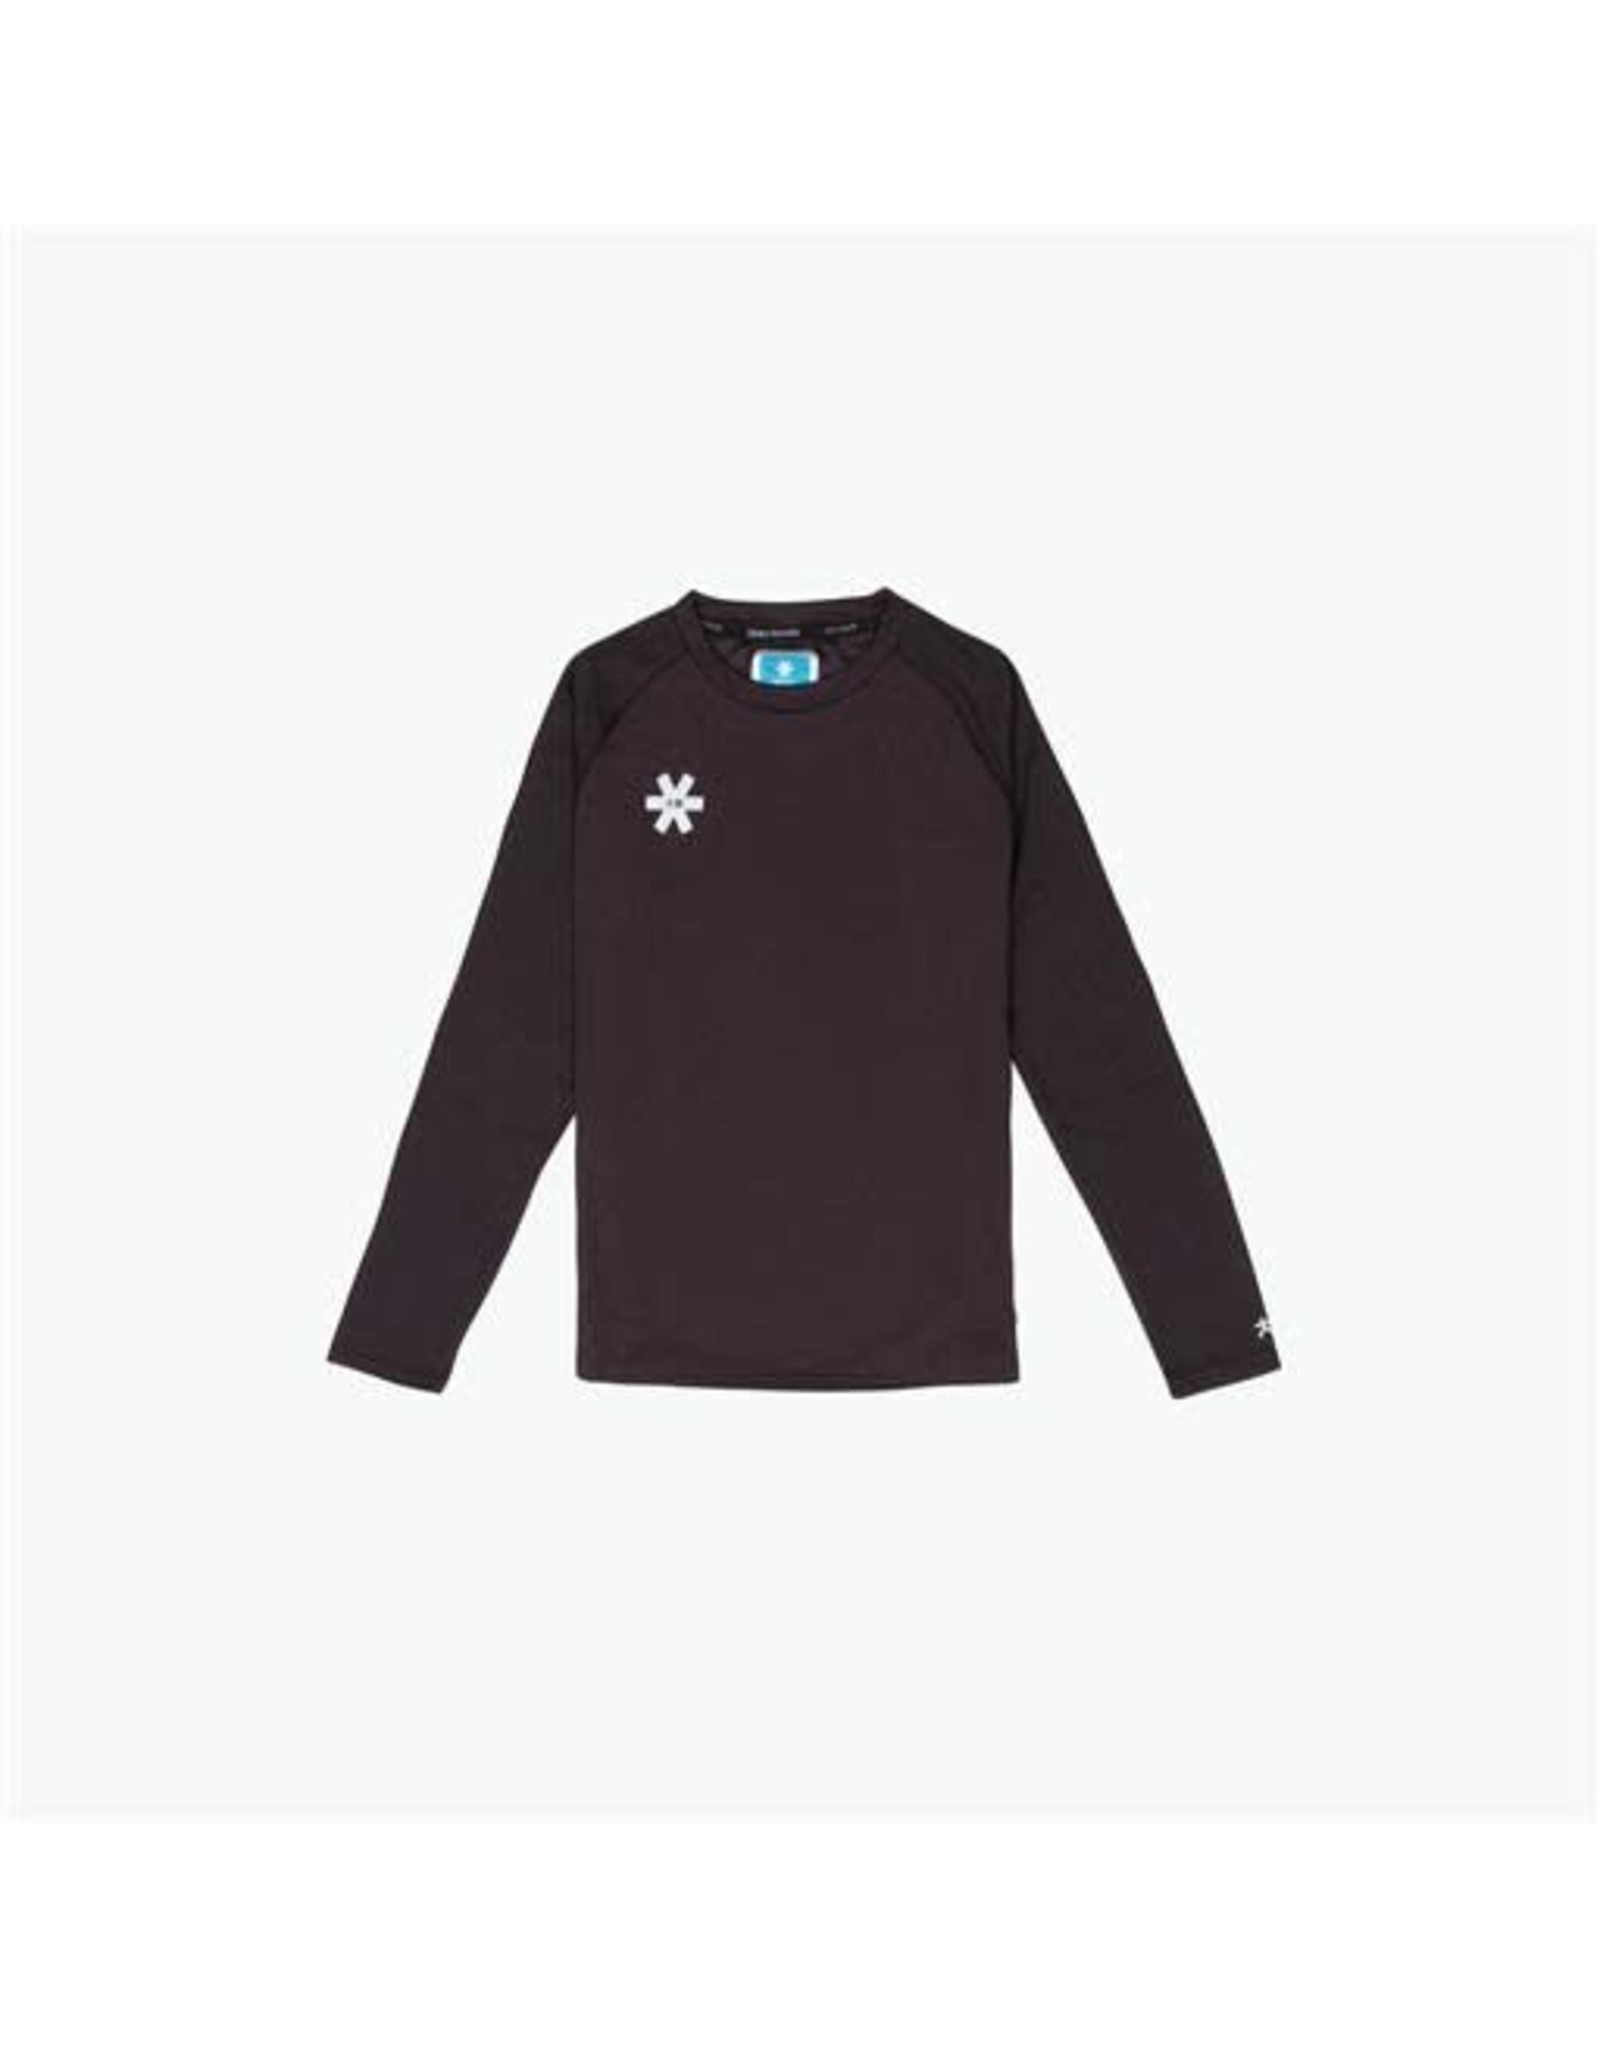 OSAKA OSAKA DESHI TRAINING TEE LONG SLEEVE